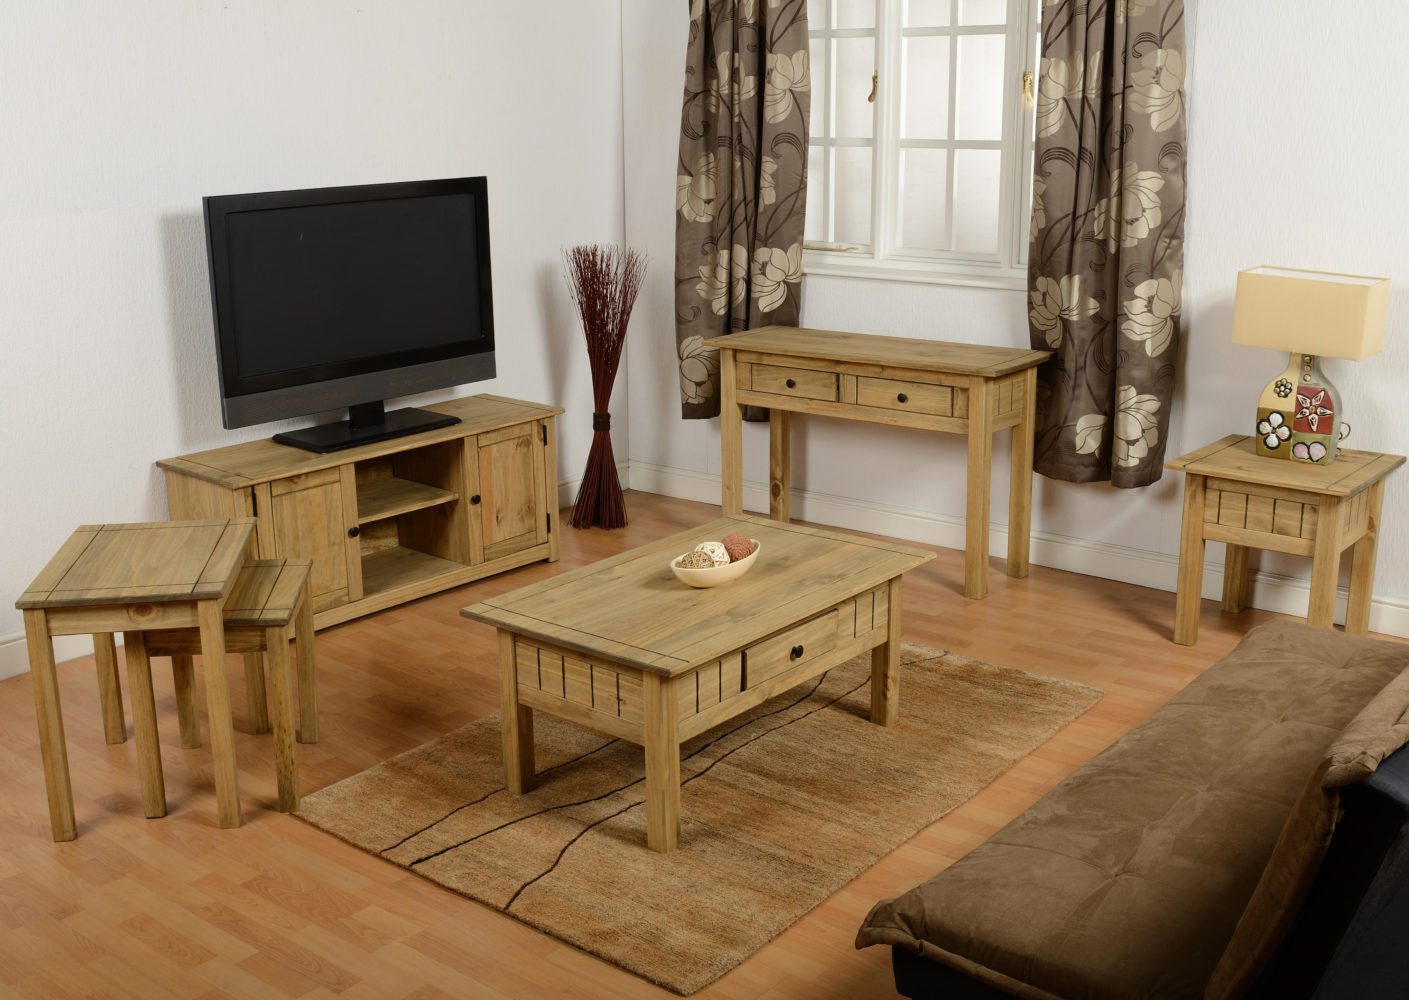 PANAMA-OCCASIONAL-ROOM-SET-reworked-1409